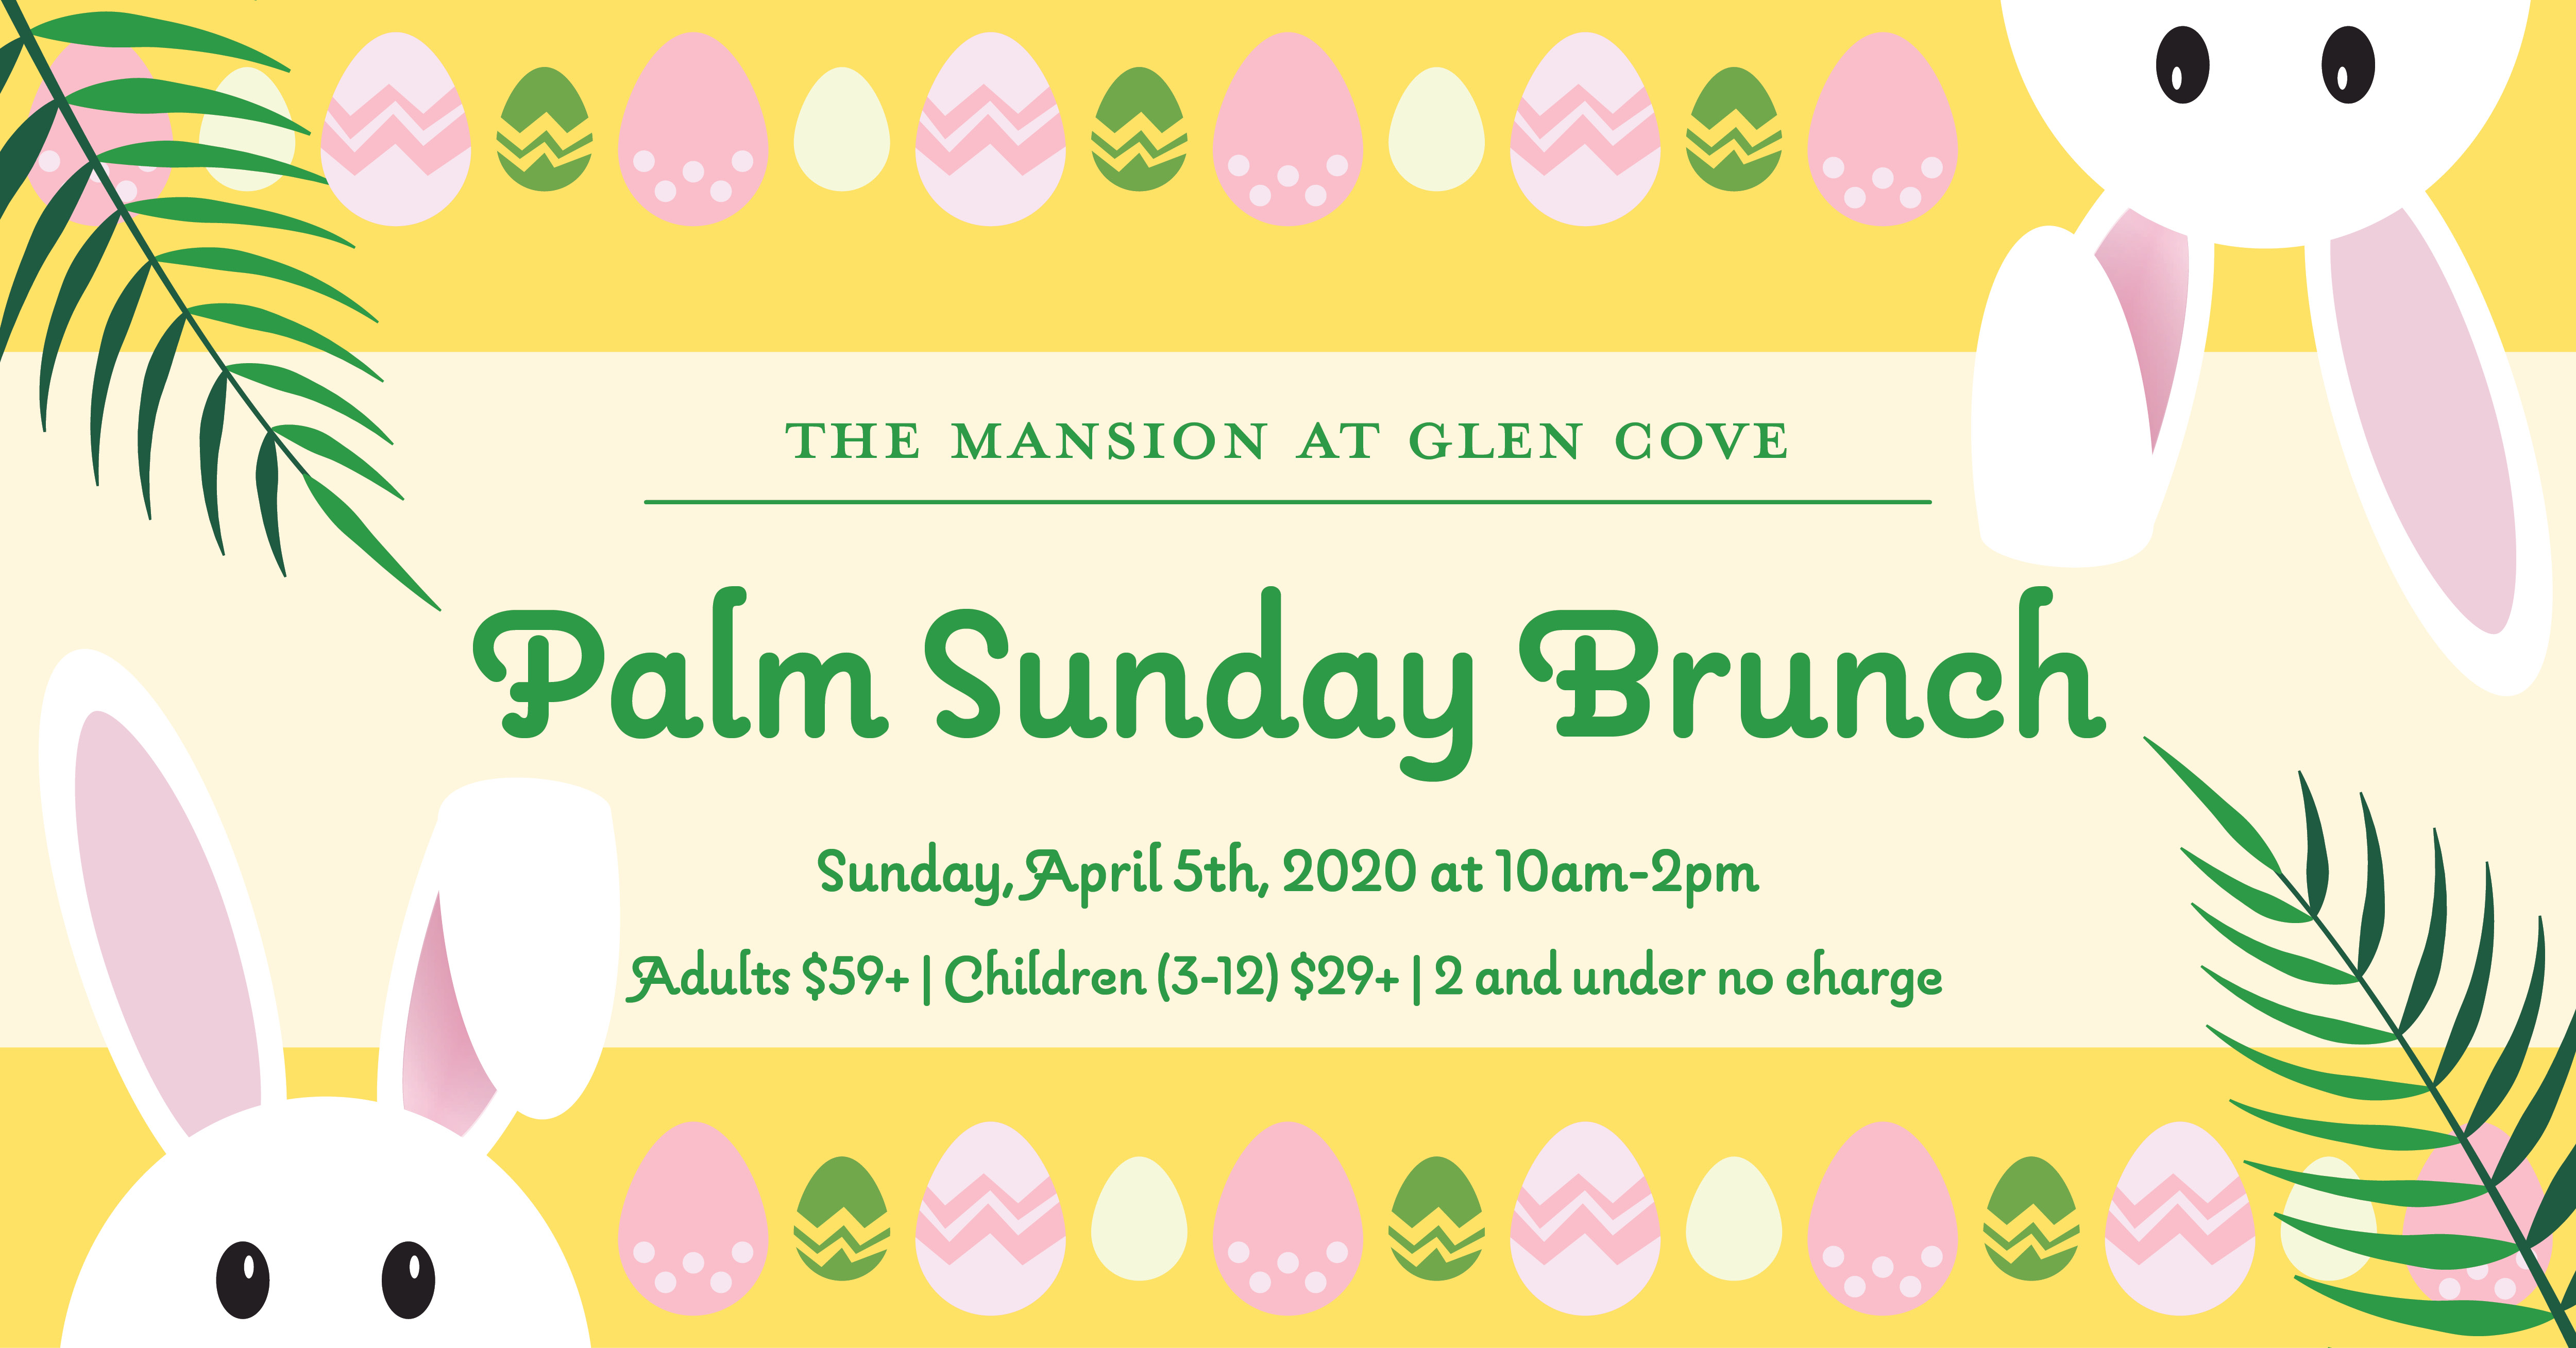 Palm Sunday Brunch Buffet